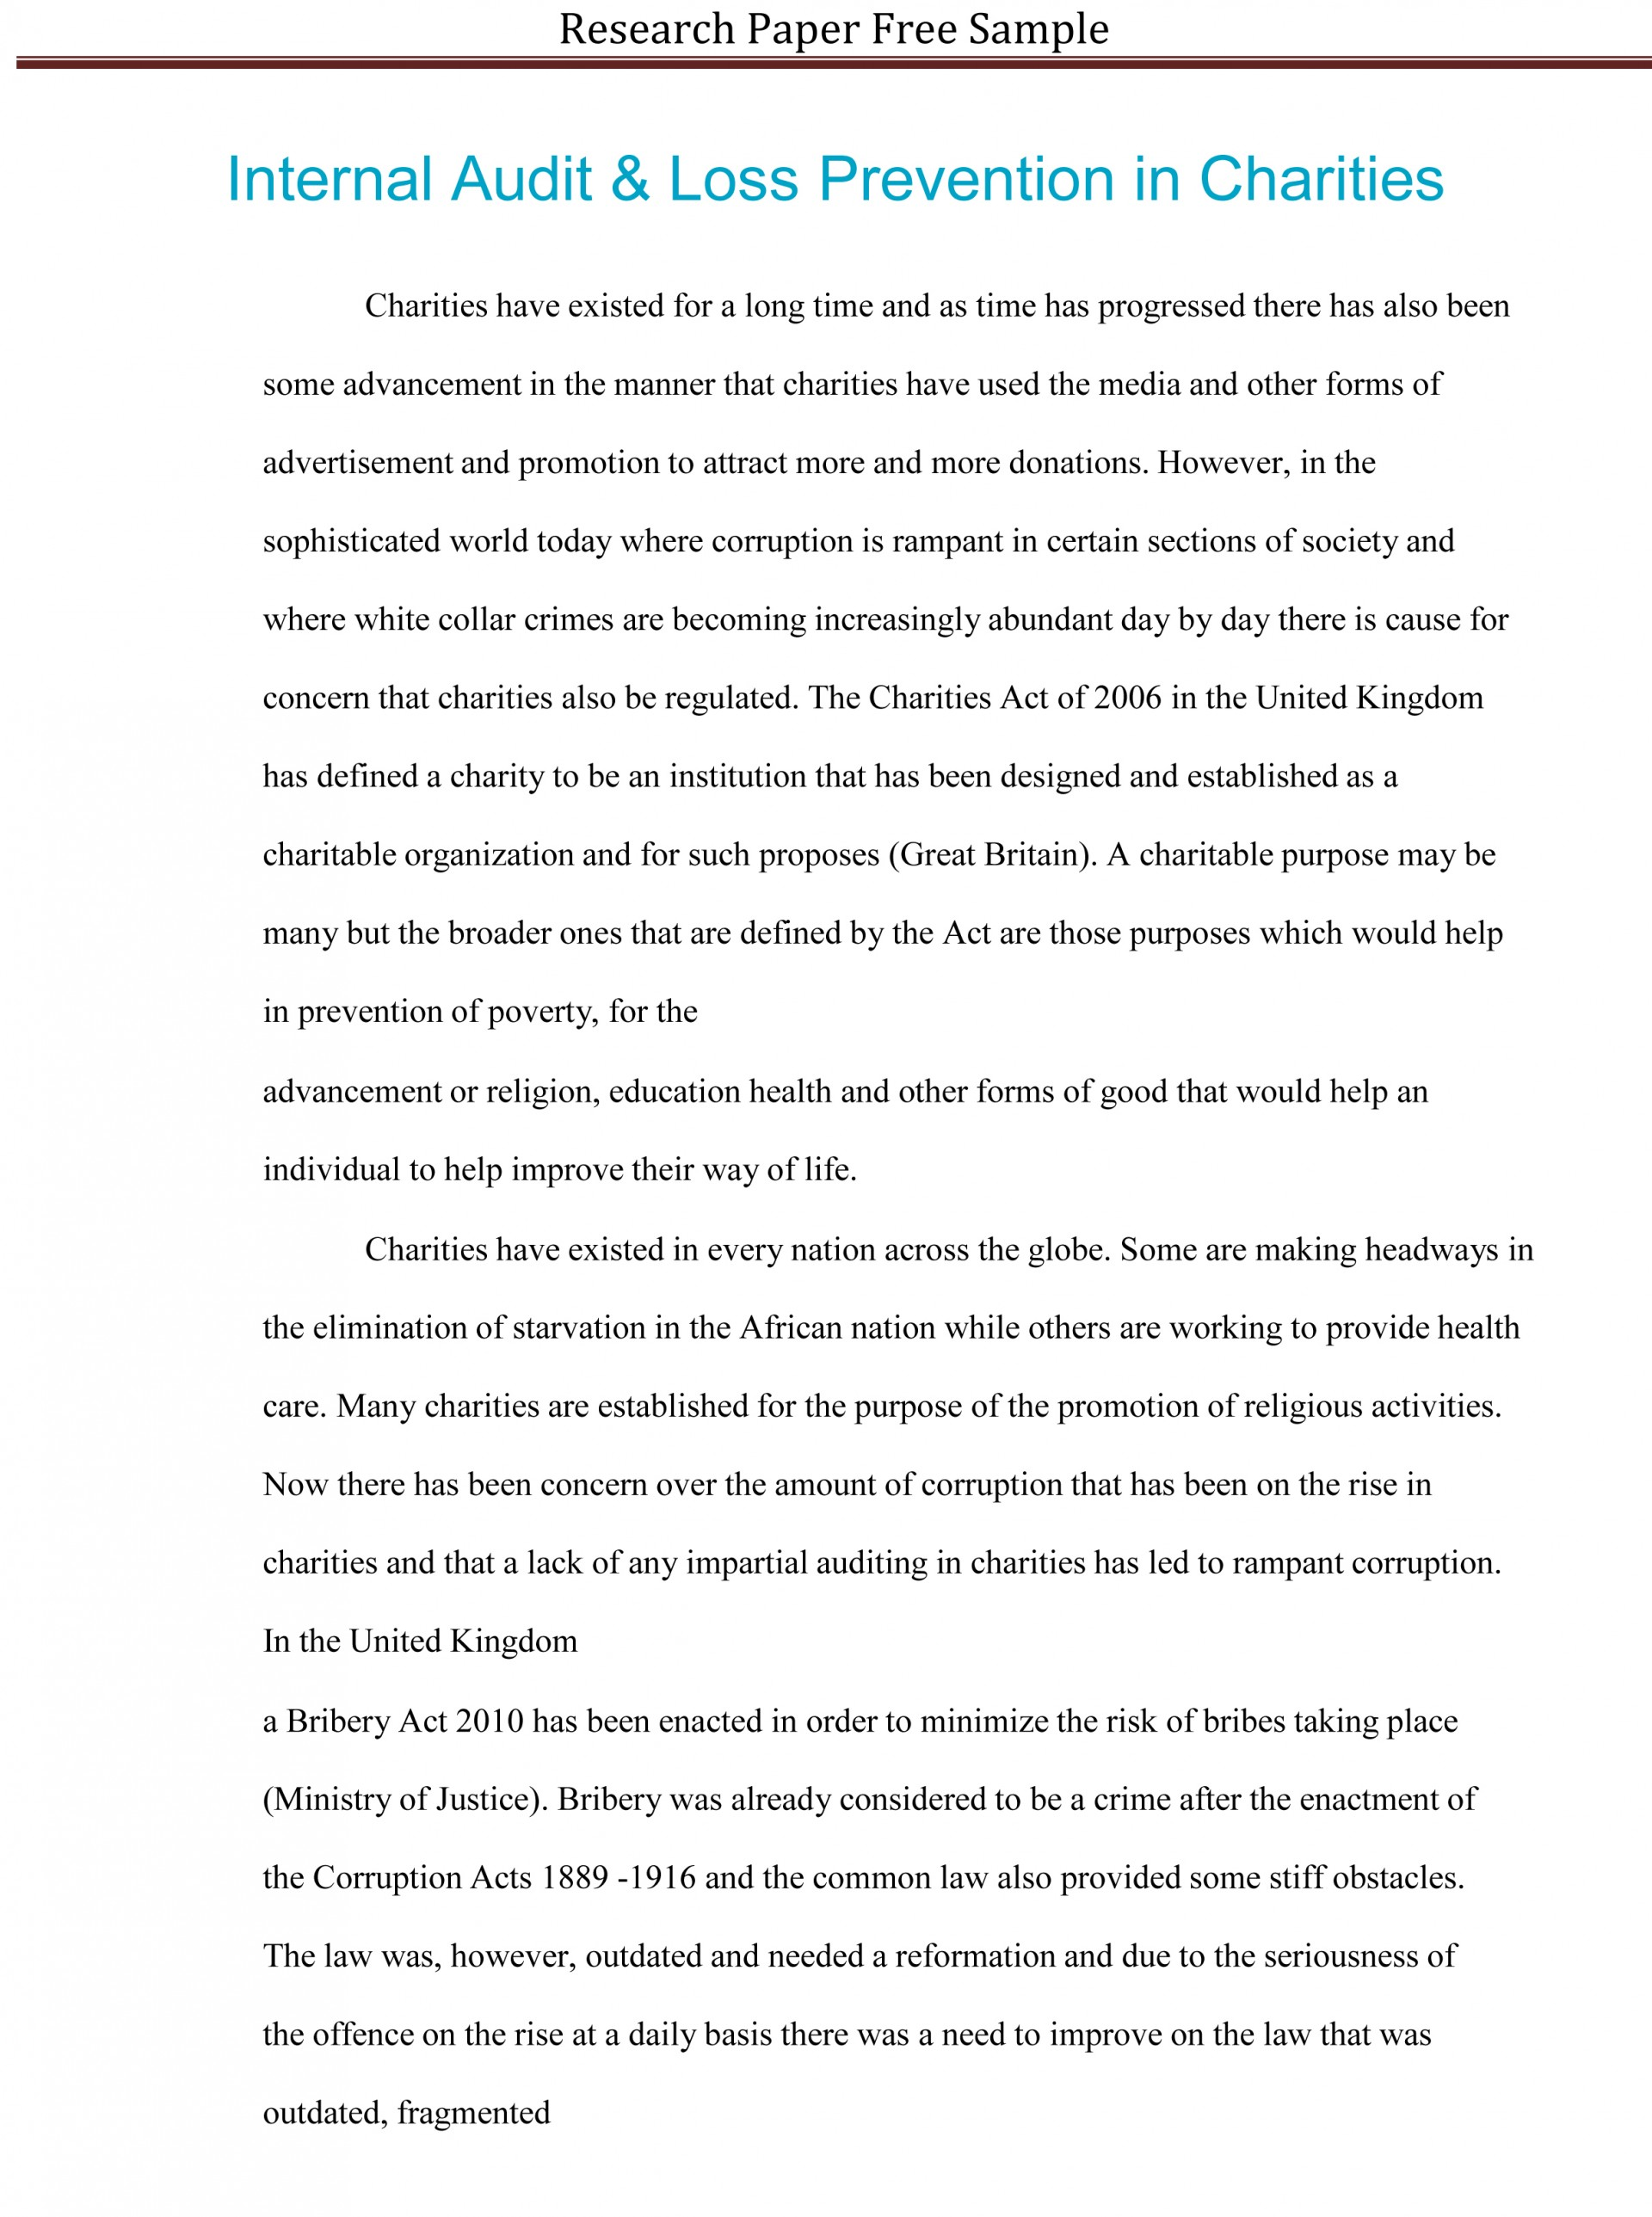 010 Writing An Introduction To Research Paper Help Paragraph Top A The Scientific Middle School For 1920